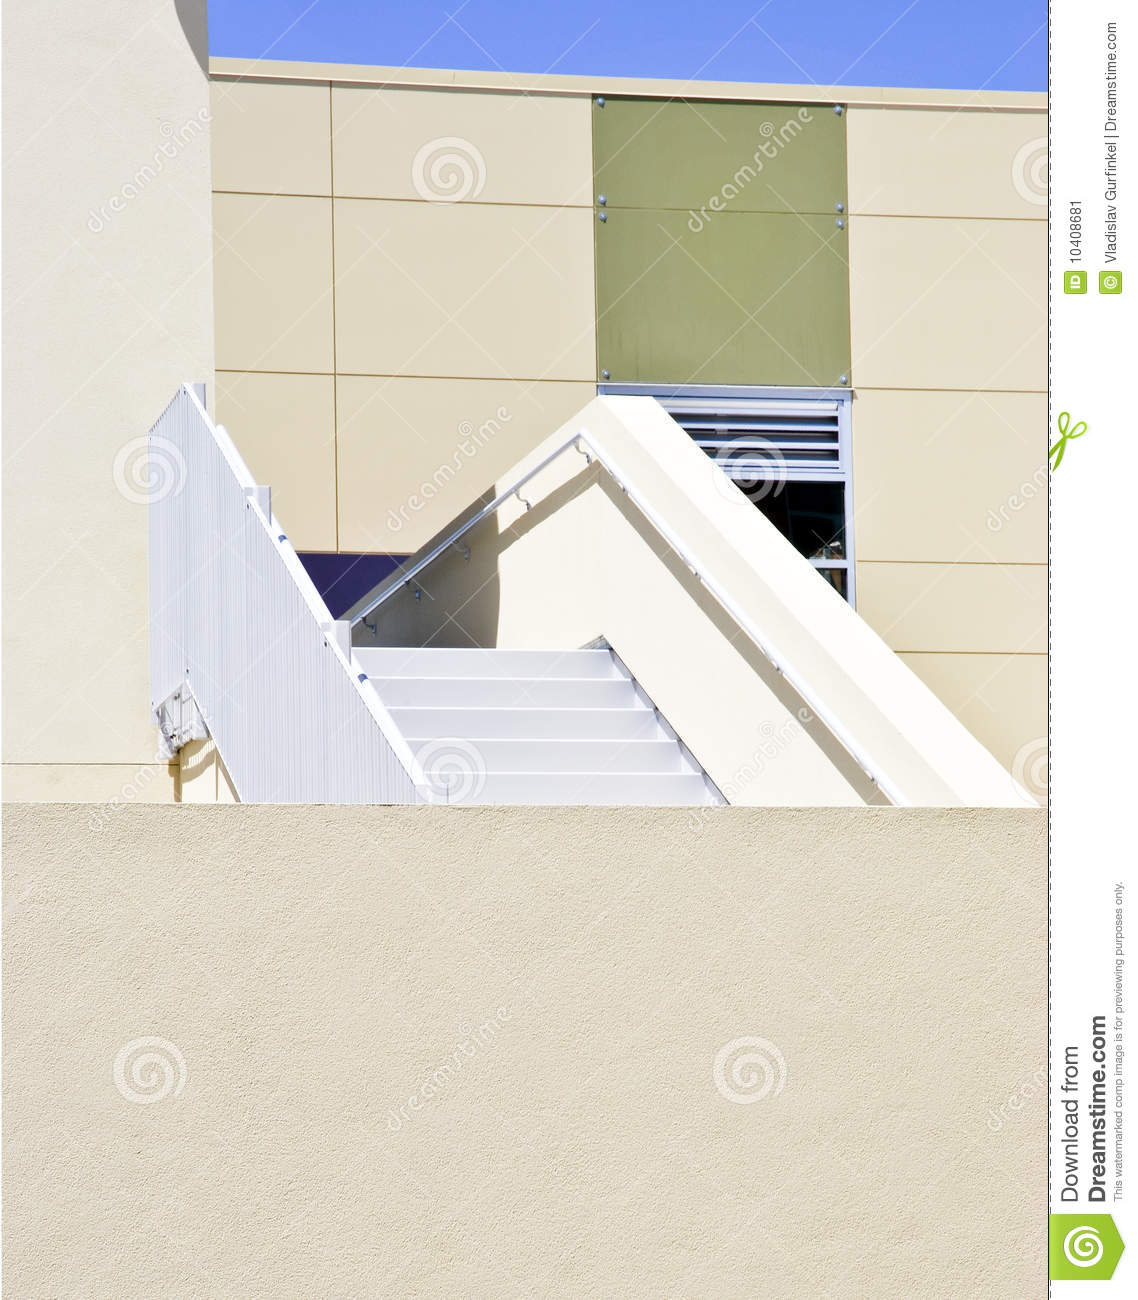 Architectural Details Of Modern Building Stock Image